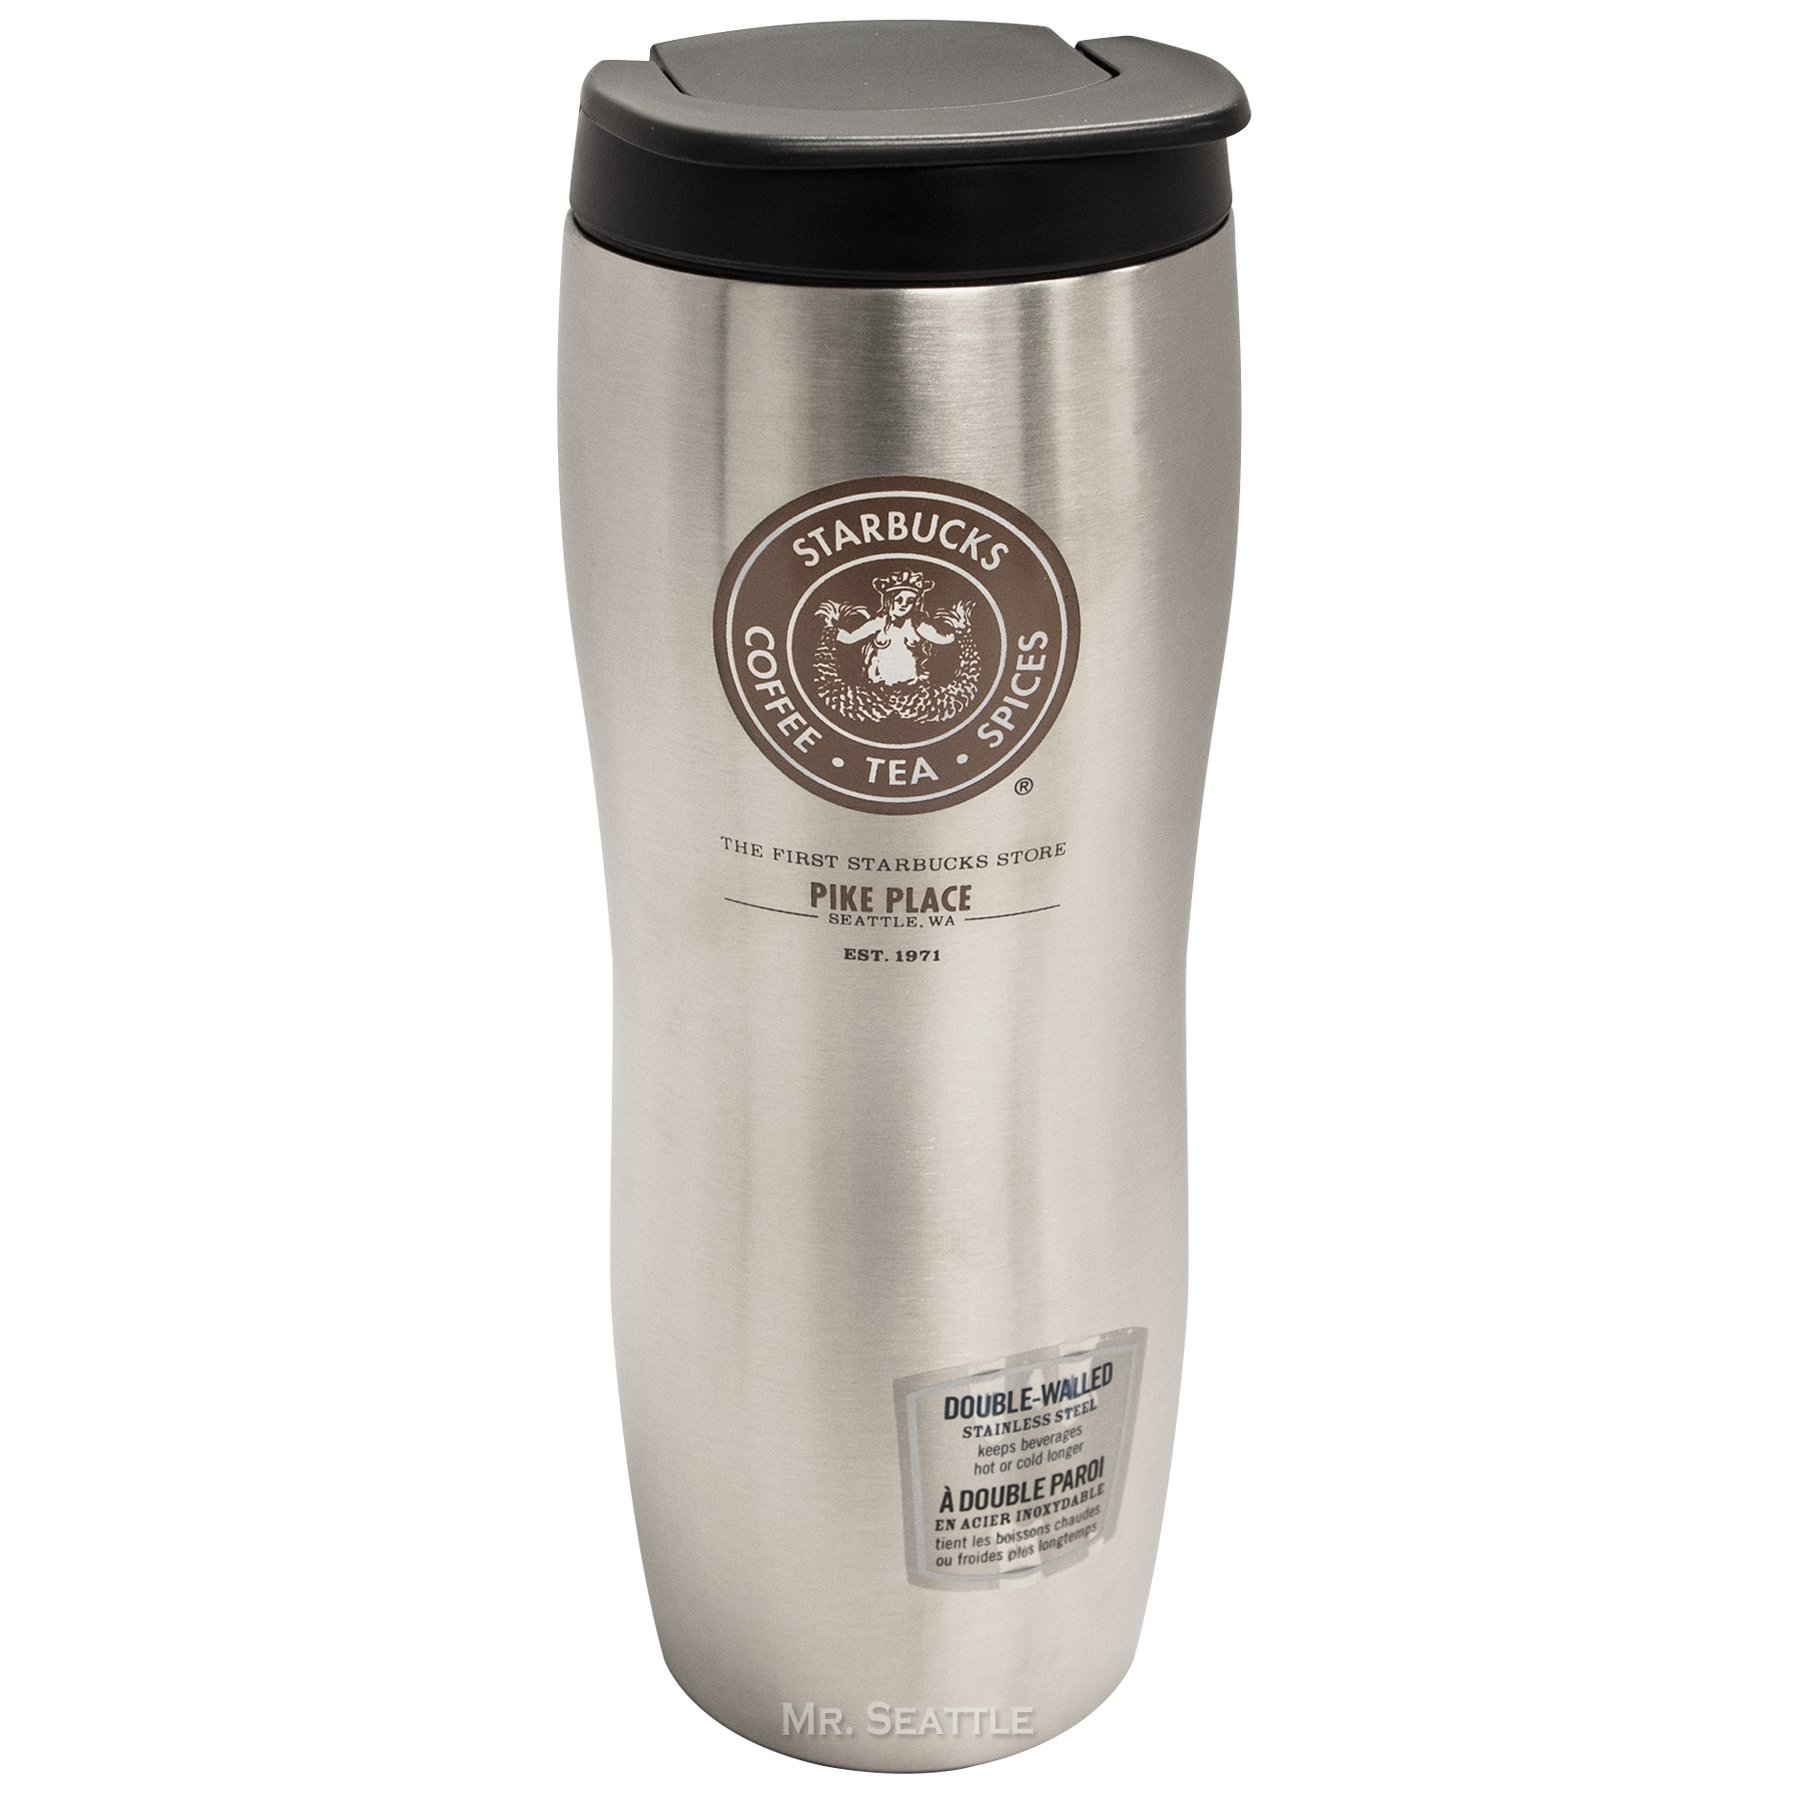 Starbucks Pike Place Concord Double-Walled Stainless Tumbler,Silver,16oz by Starbucks